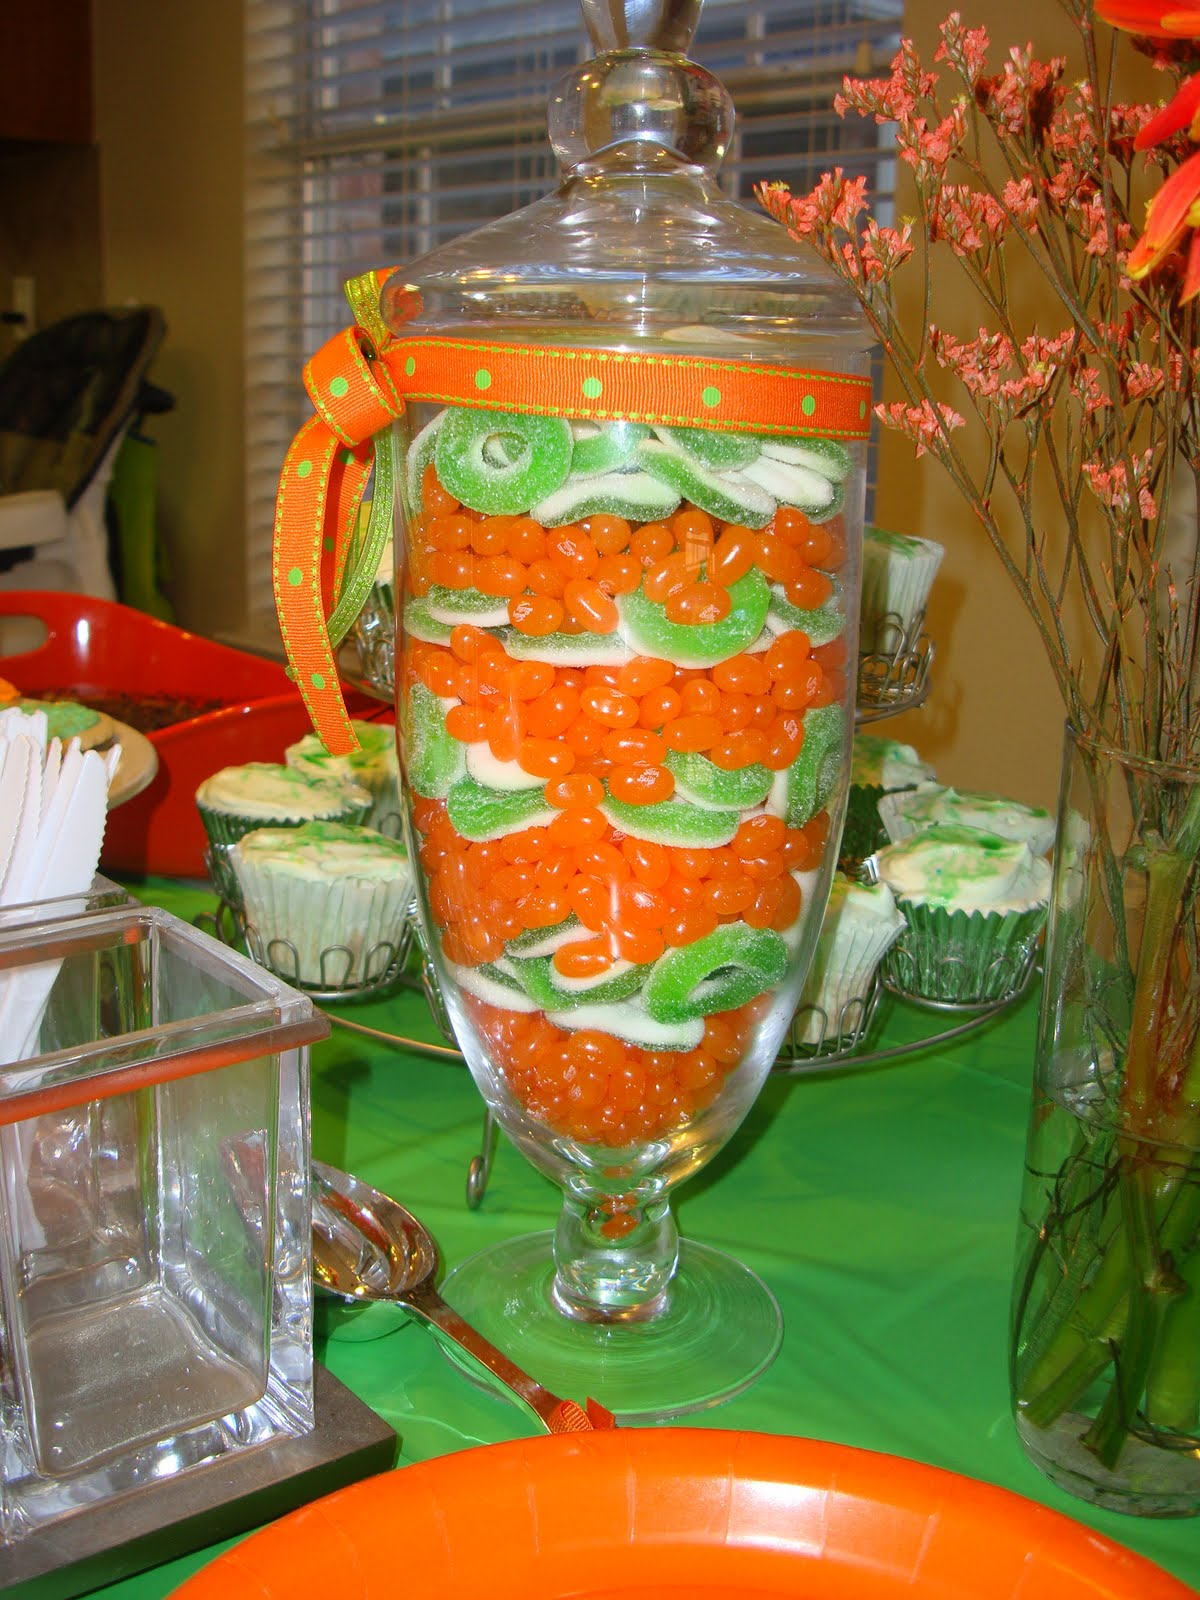 I Hope You All Enjoyed Our Fun Green Eggs And Ham Shower. It Was Definitely  Fun To Do! My Next Baby Shower For A Friend Is In January, So Itu0027s Time To  ...